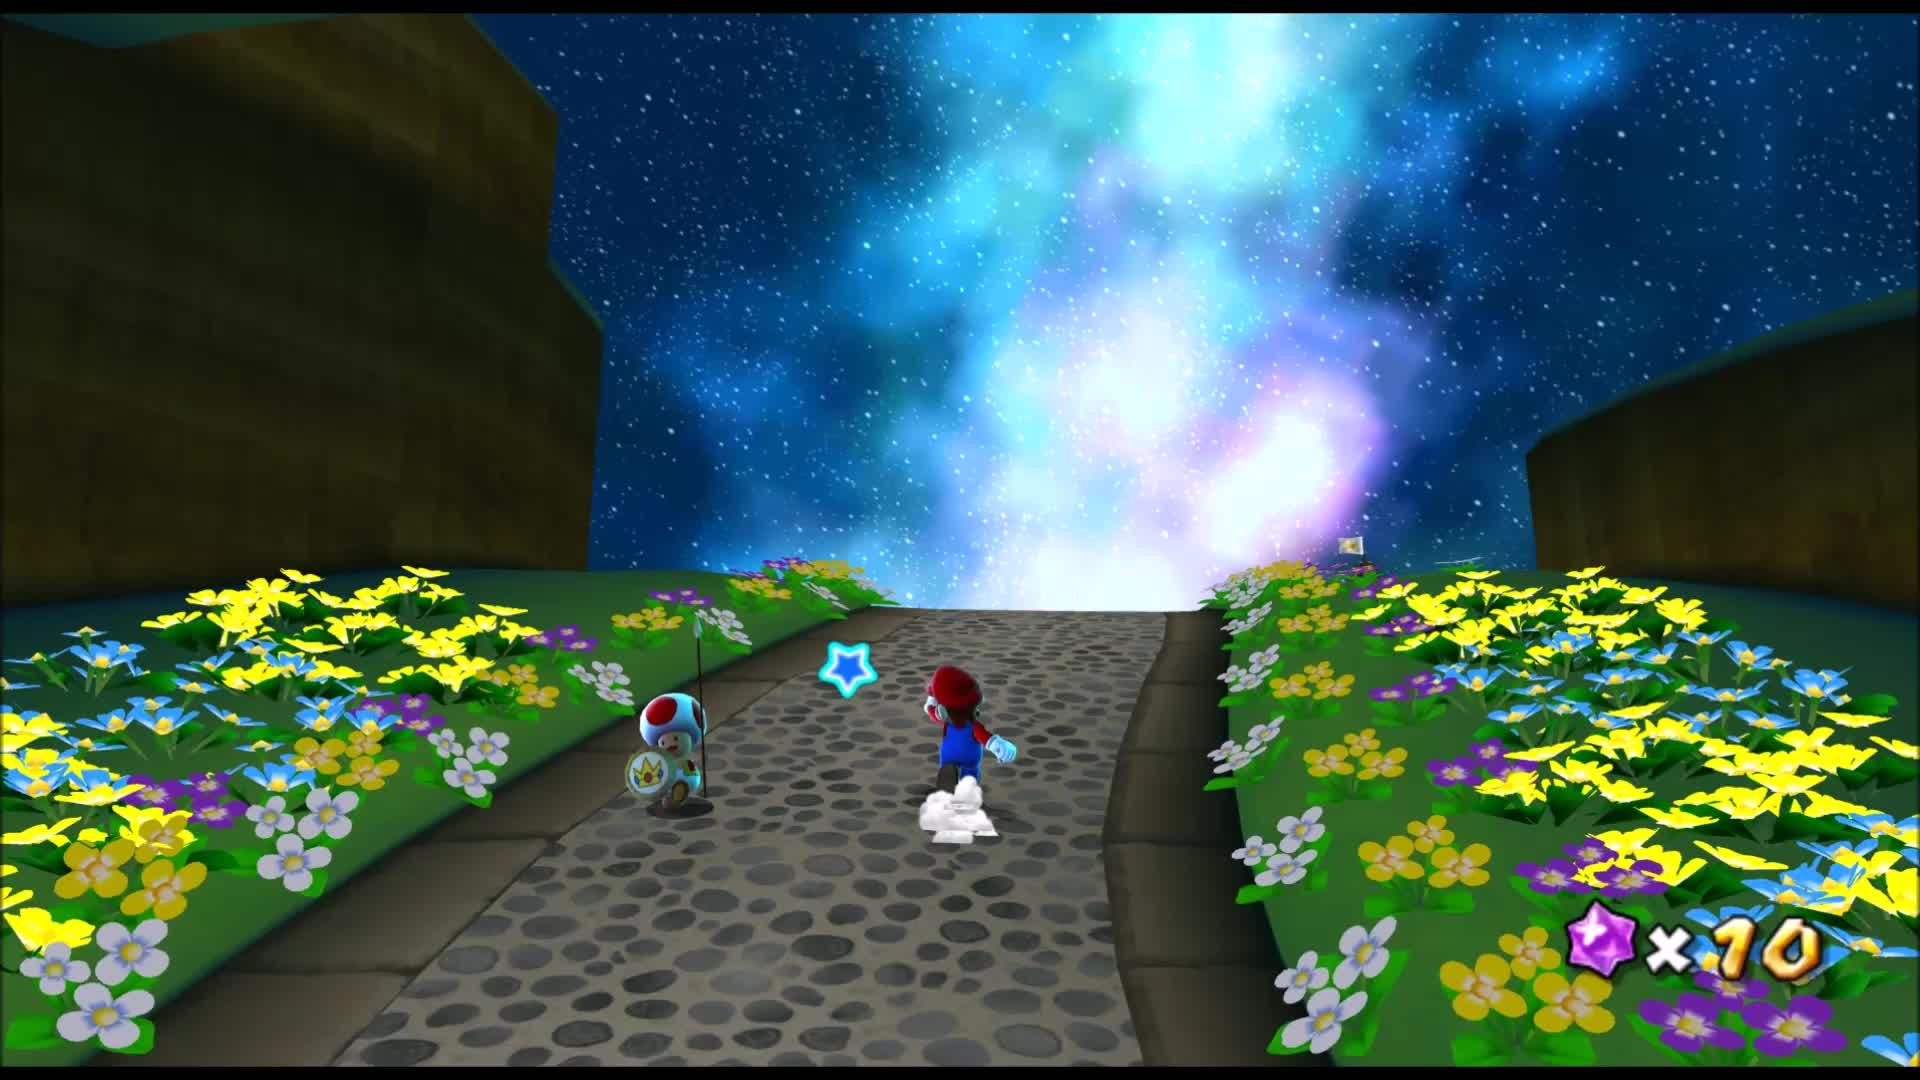 Super Mario Galaxy is absolutely stunning on Dolphin GIFs